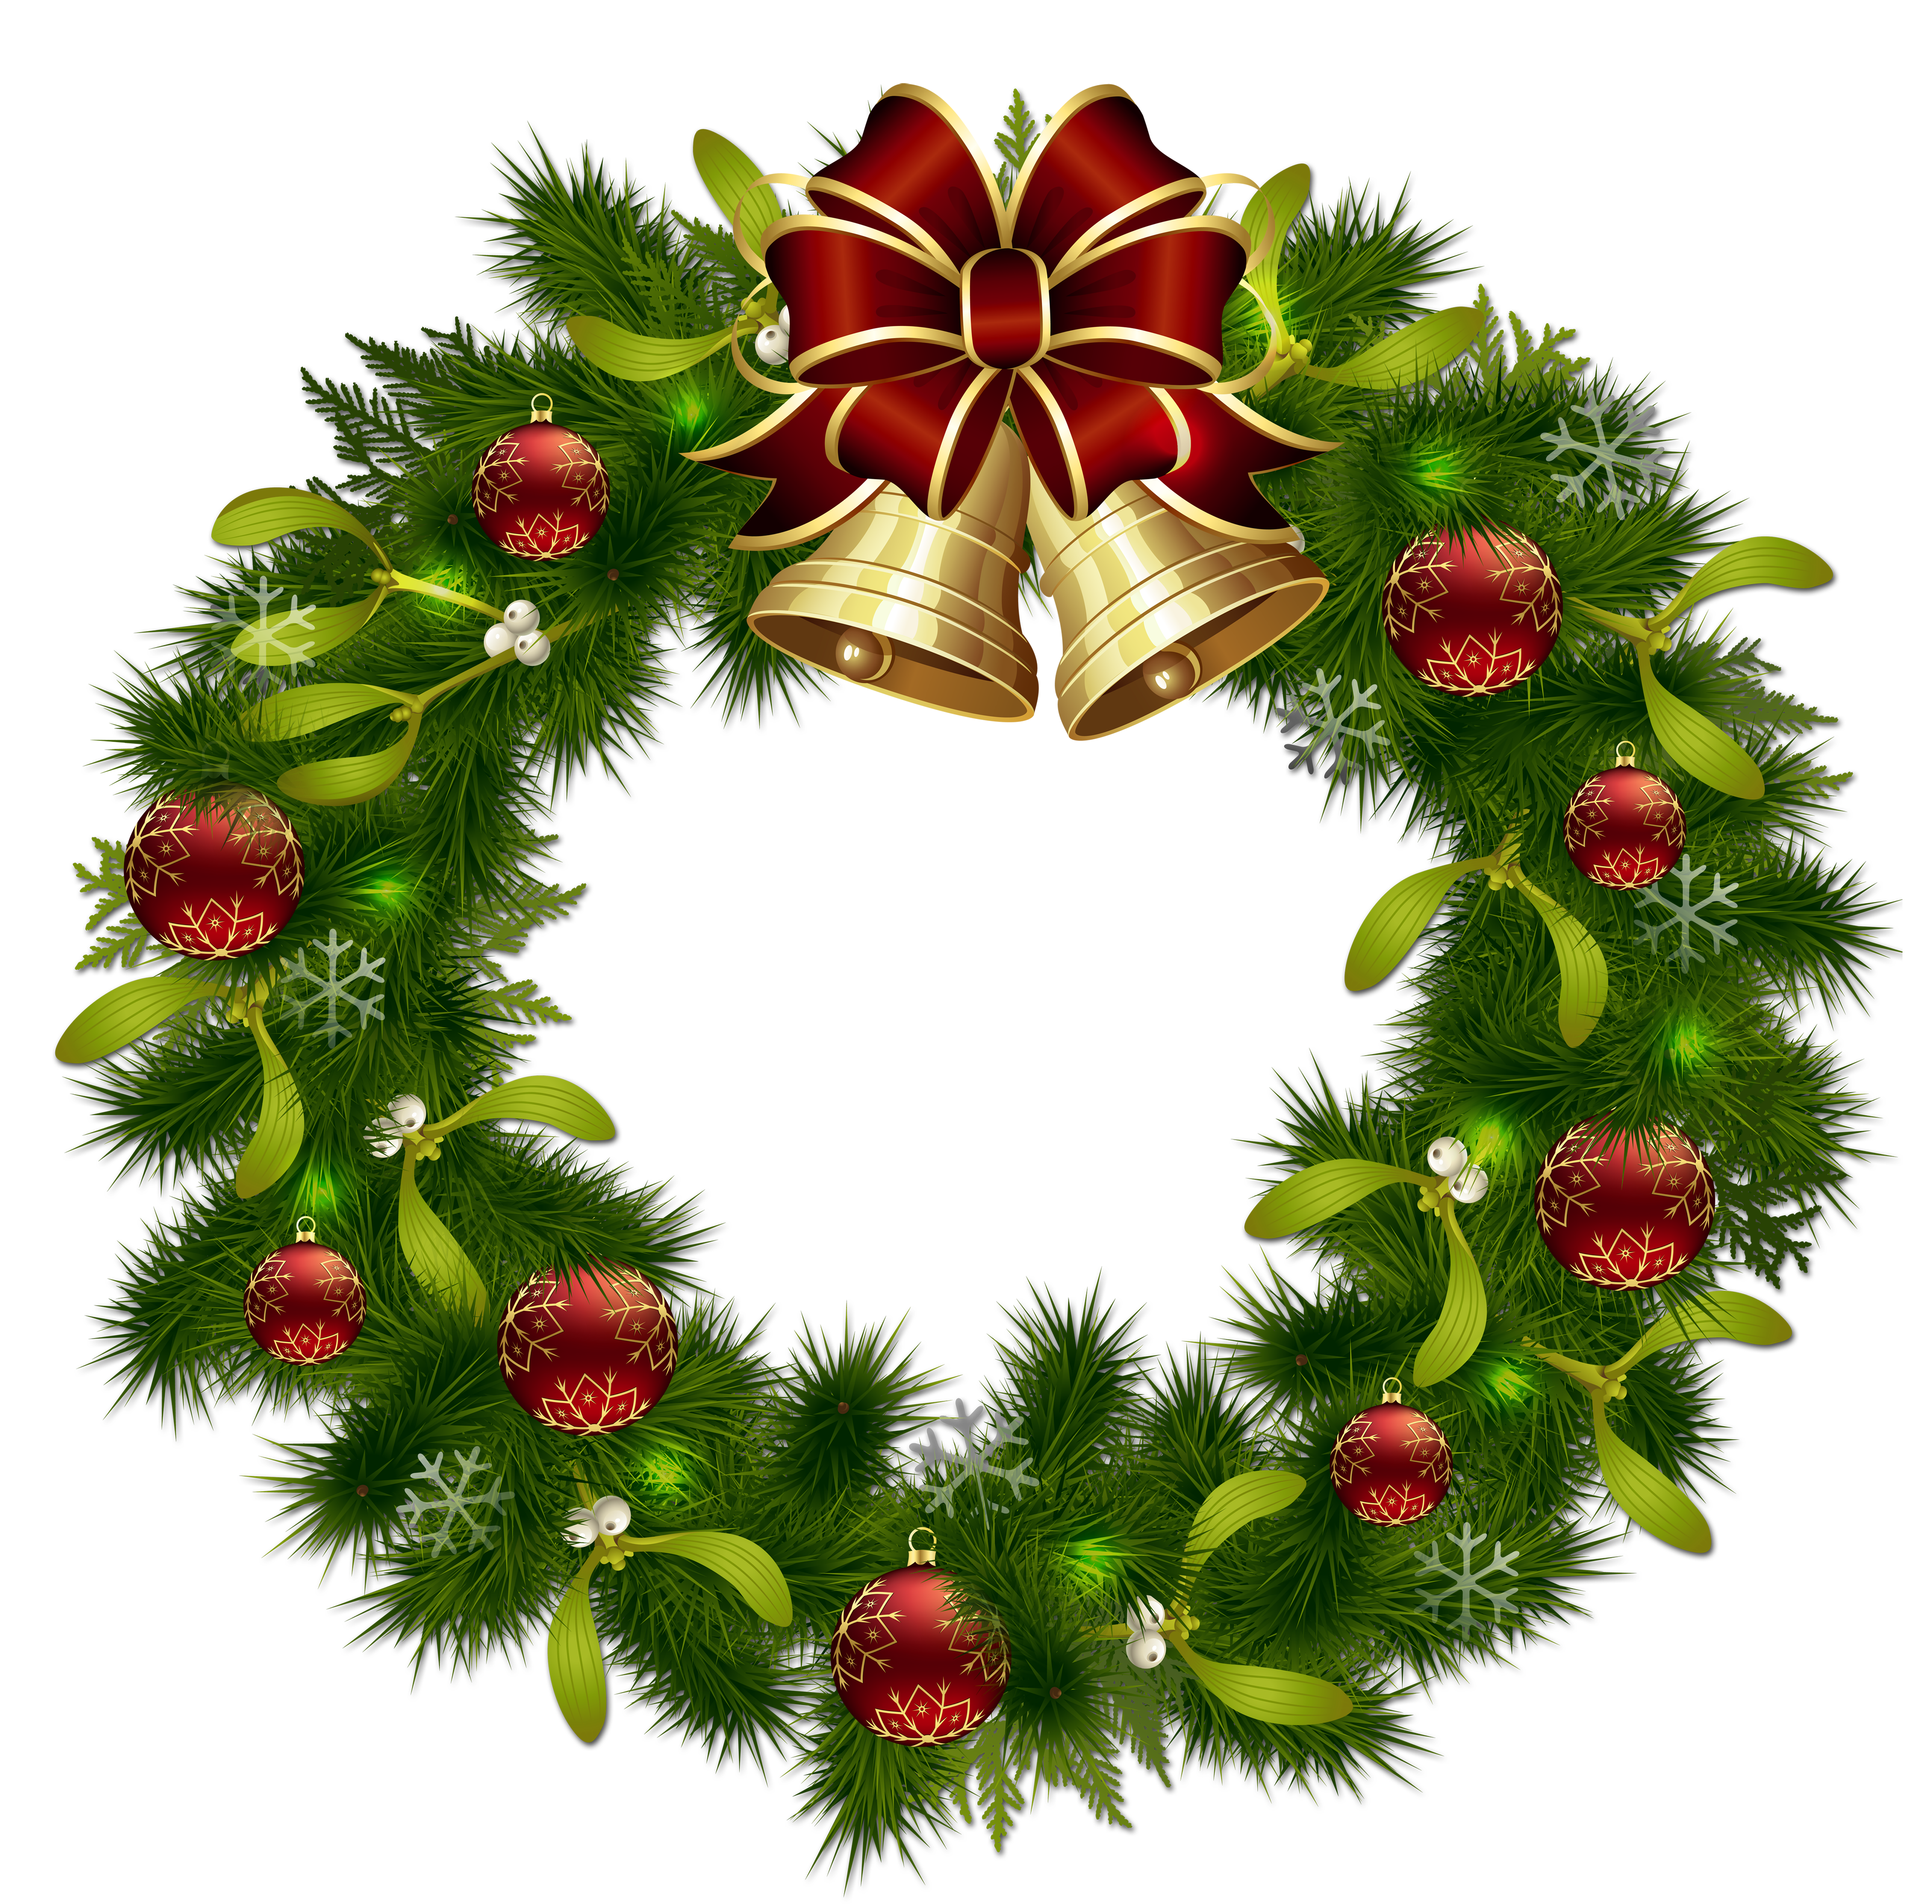 Clipart xmas wreath jpg Transparent Christmas Pinecone Wreath with Gold Bells Clipart ... jpg